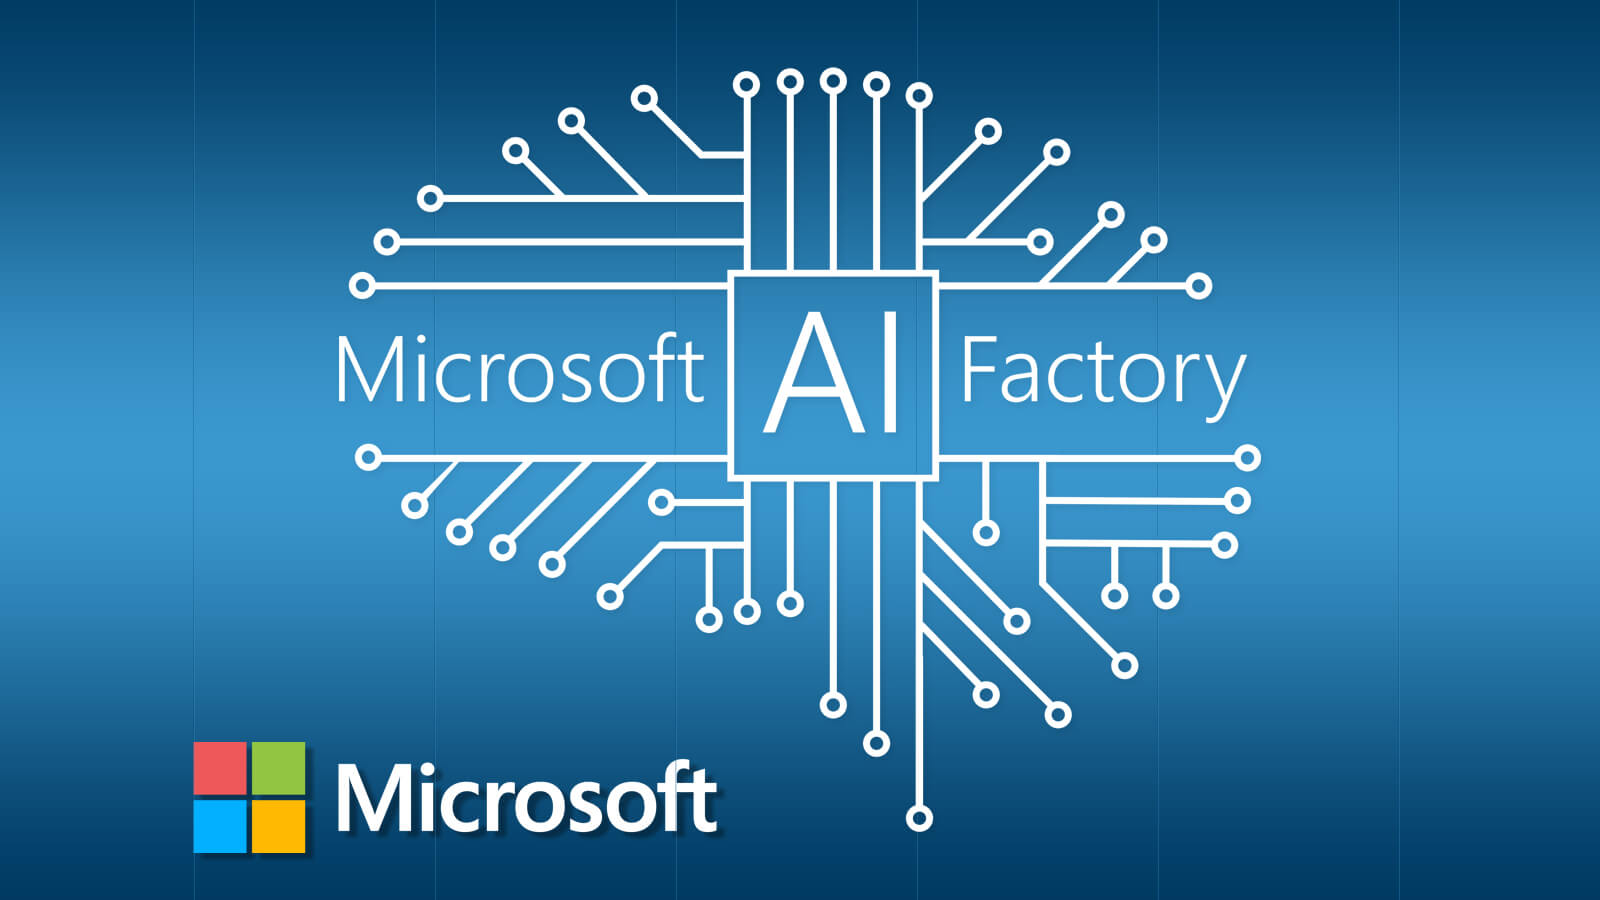 AI is the future: Microsoft wants to usher it in responsibly